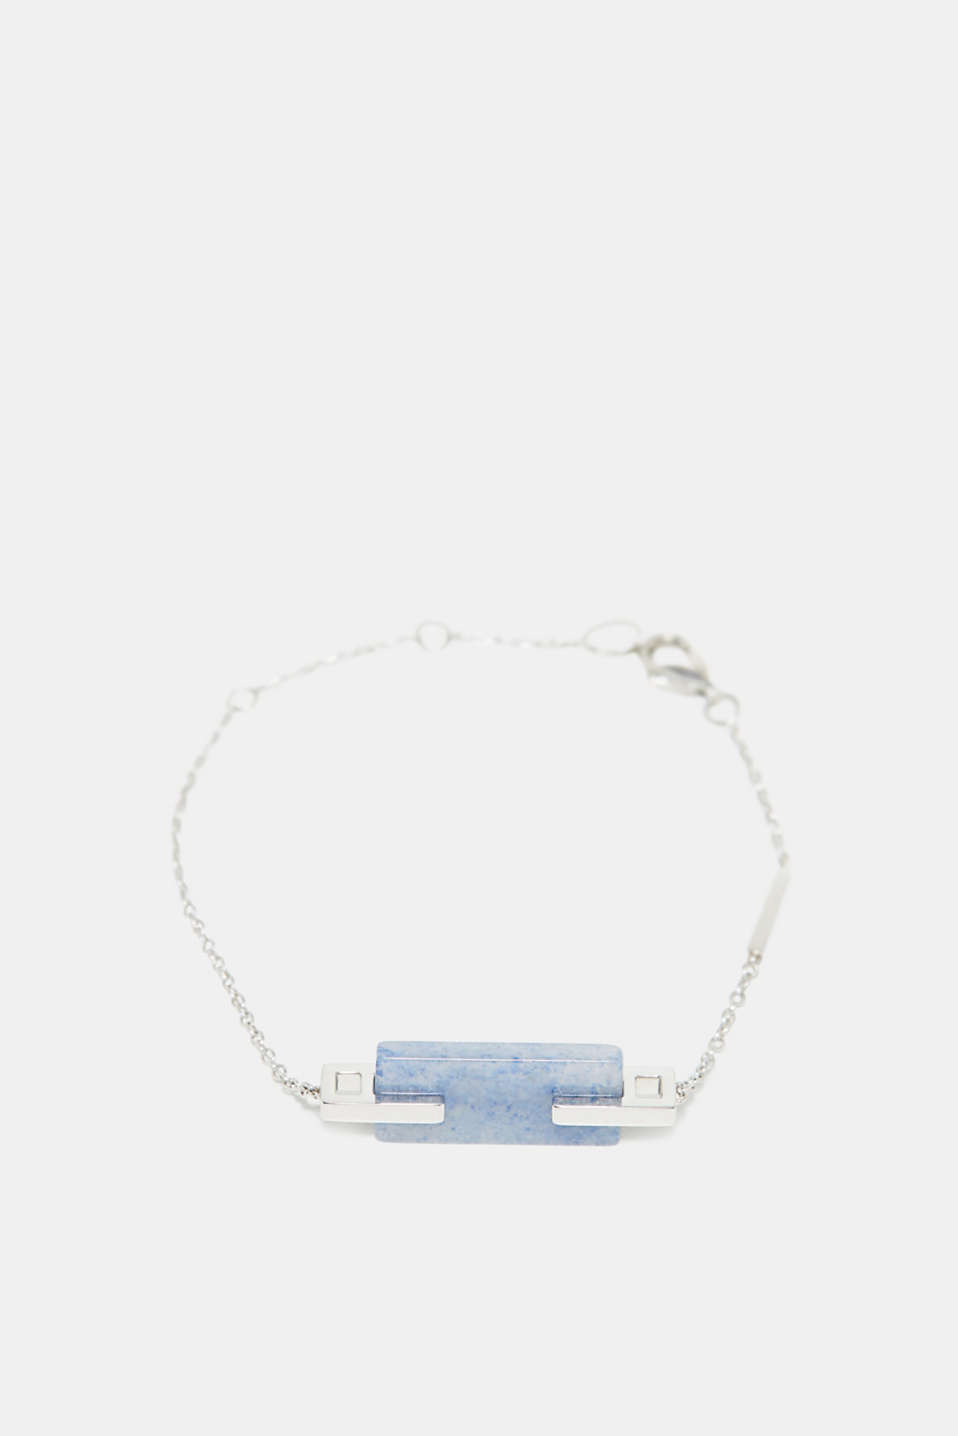 Esprit - Bracelet with blue gemstone, made of stainless steel